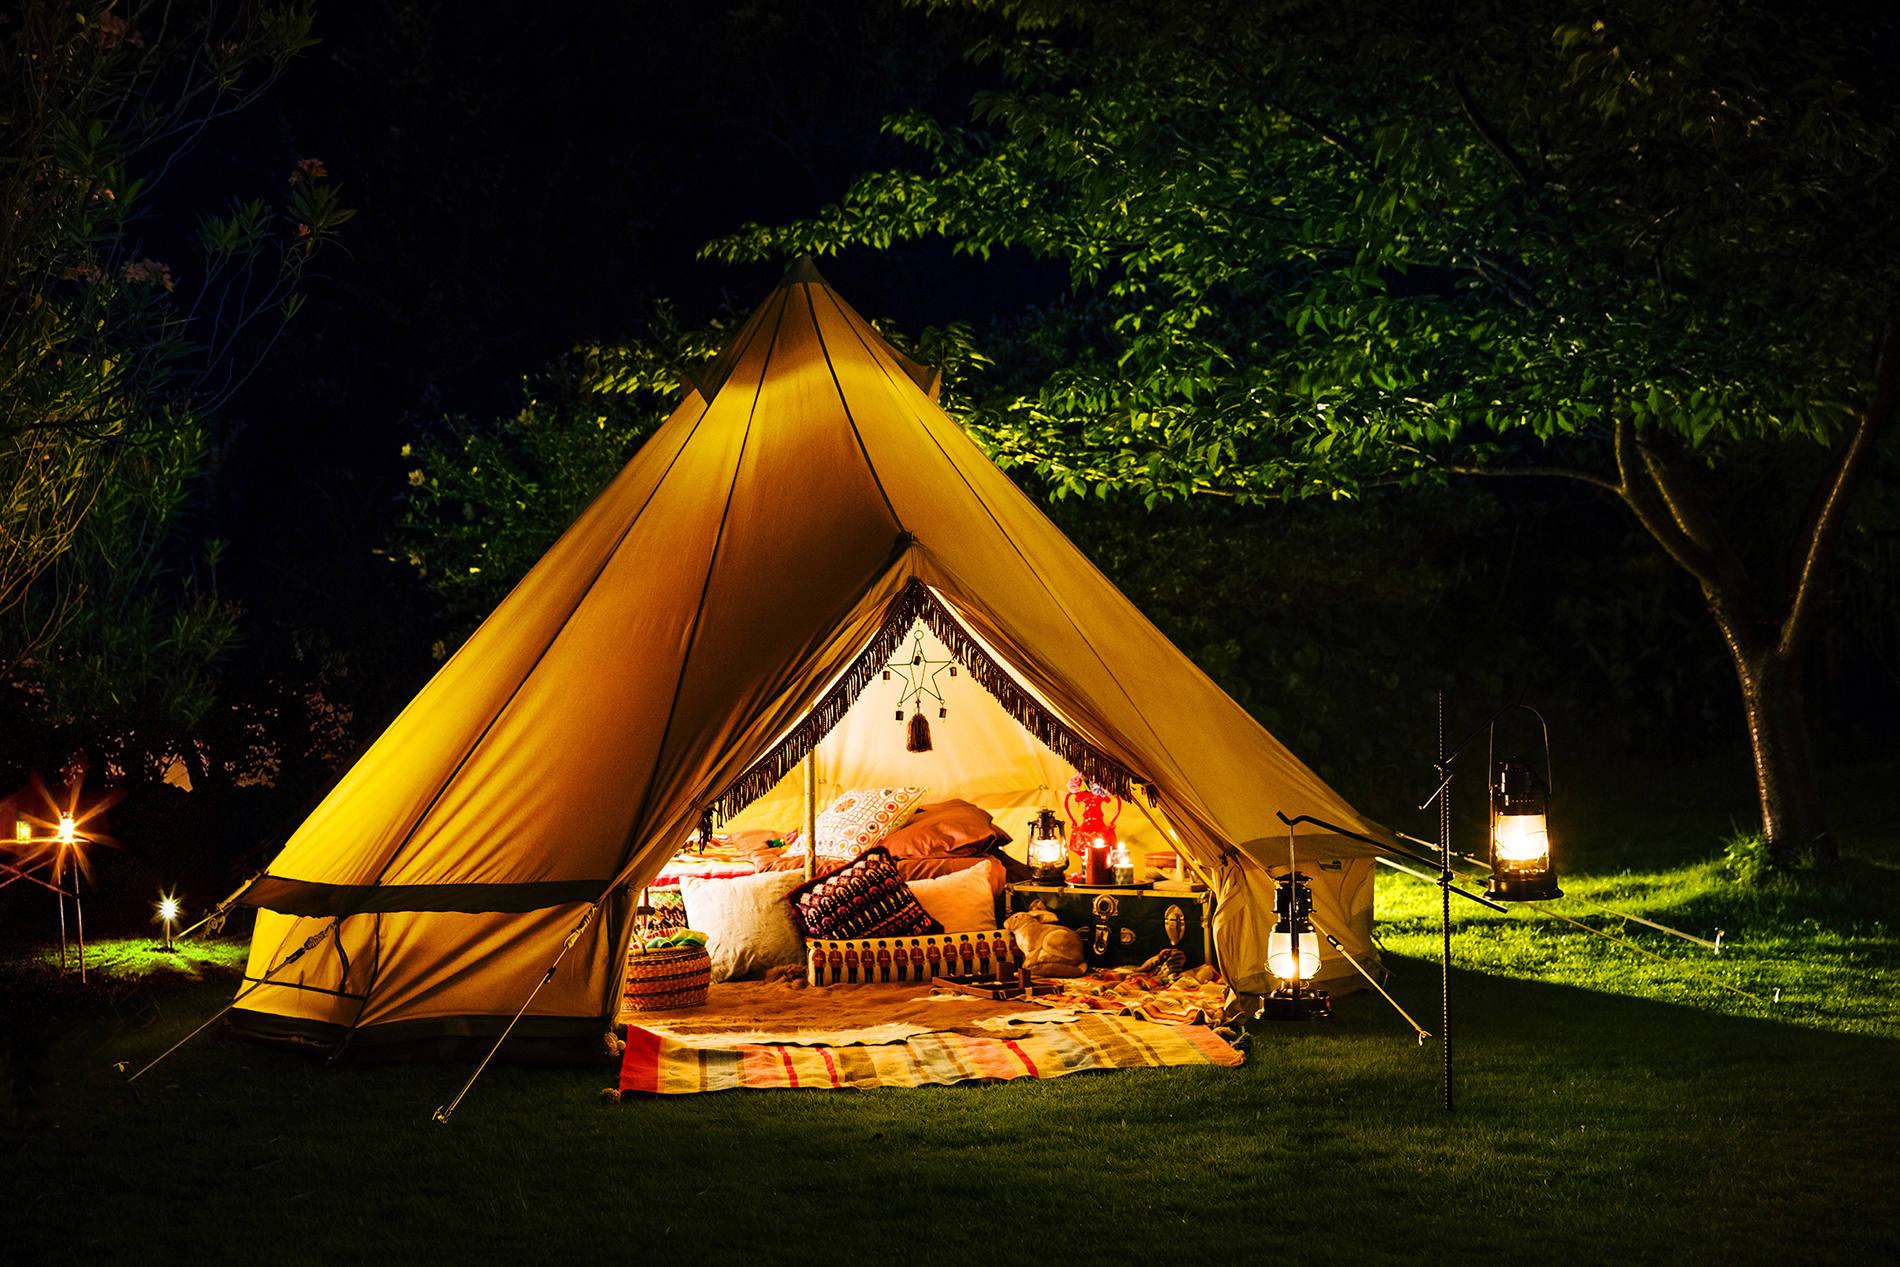 Camping tent with lights on at night  54176